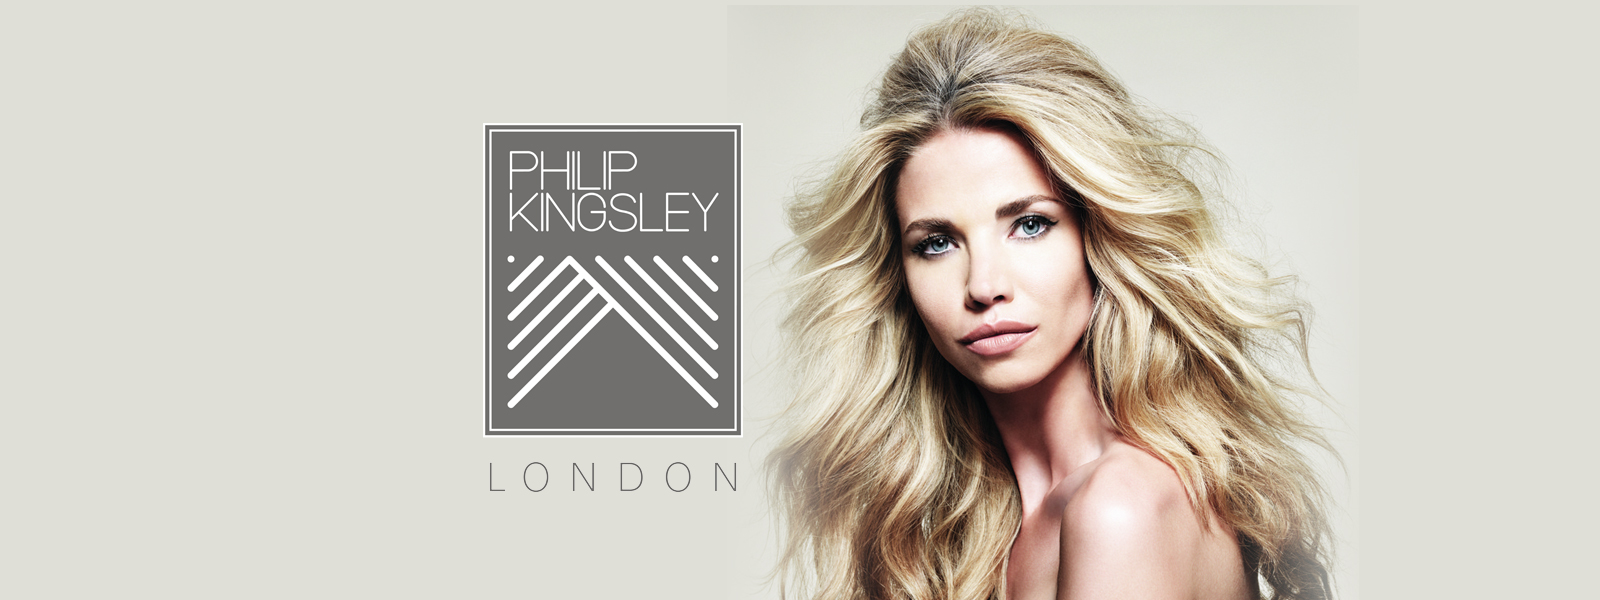 philip kinglsey trichotherapy